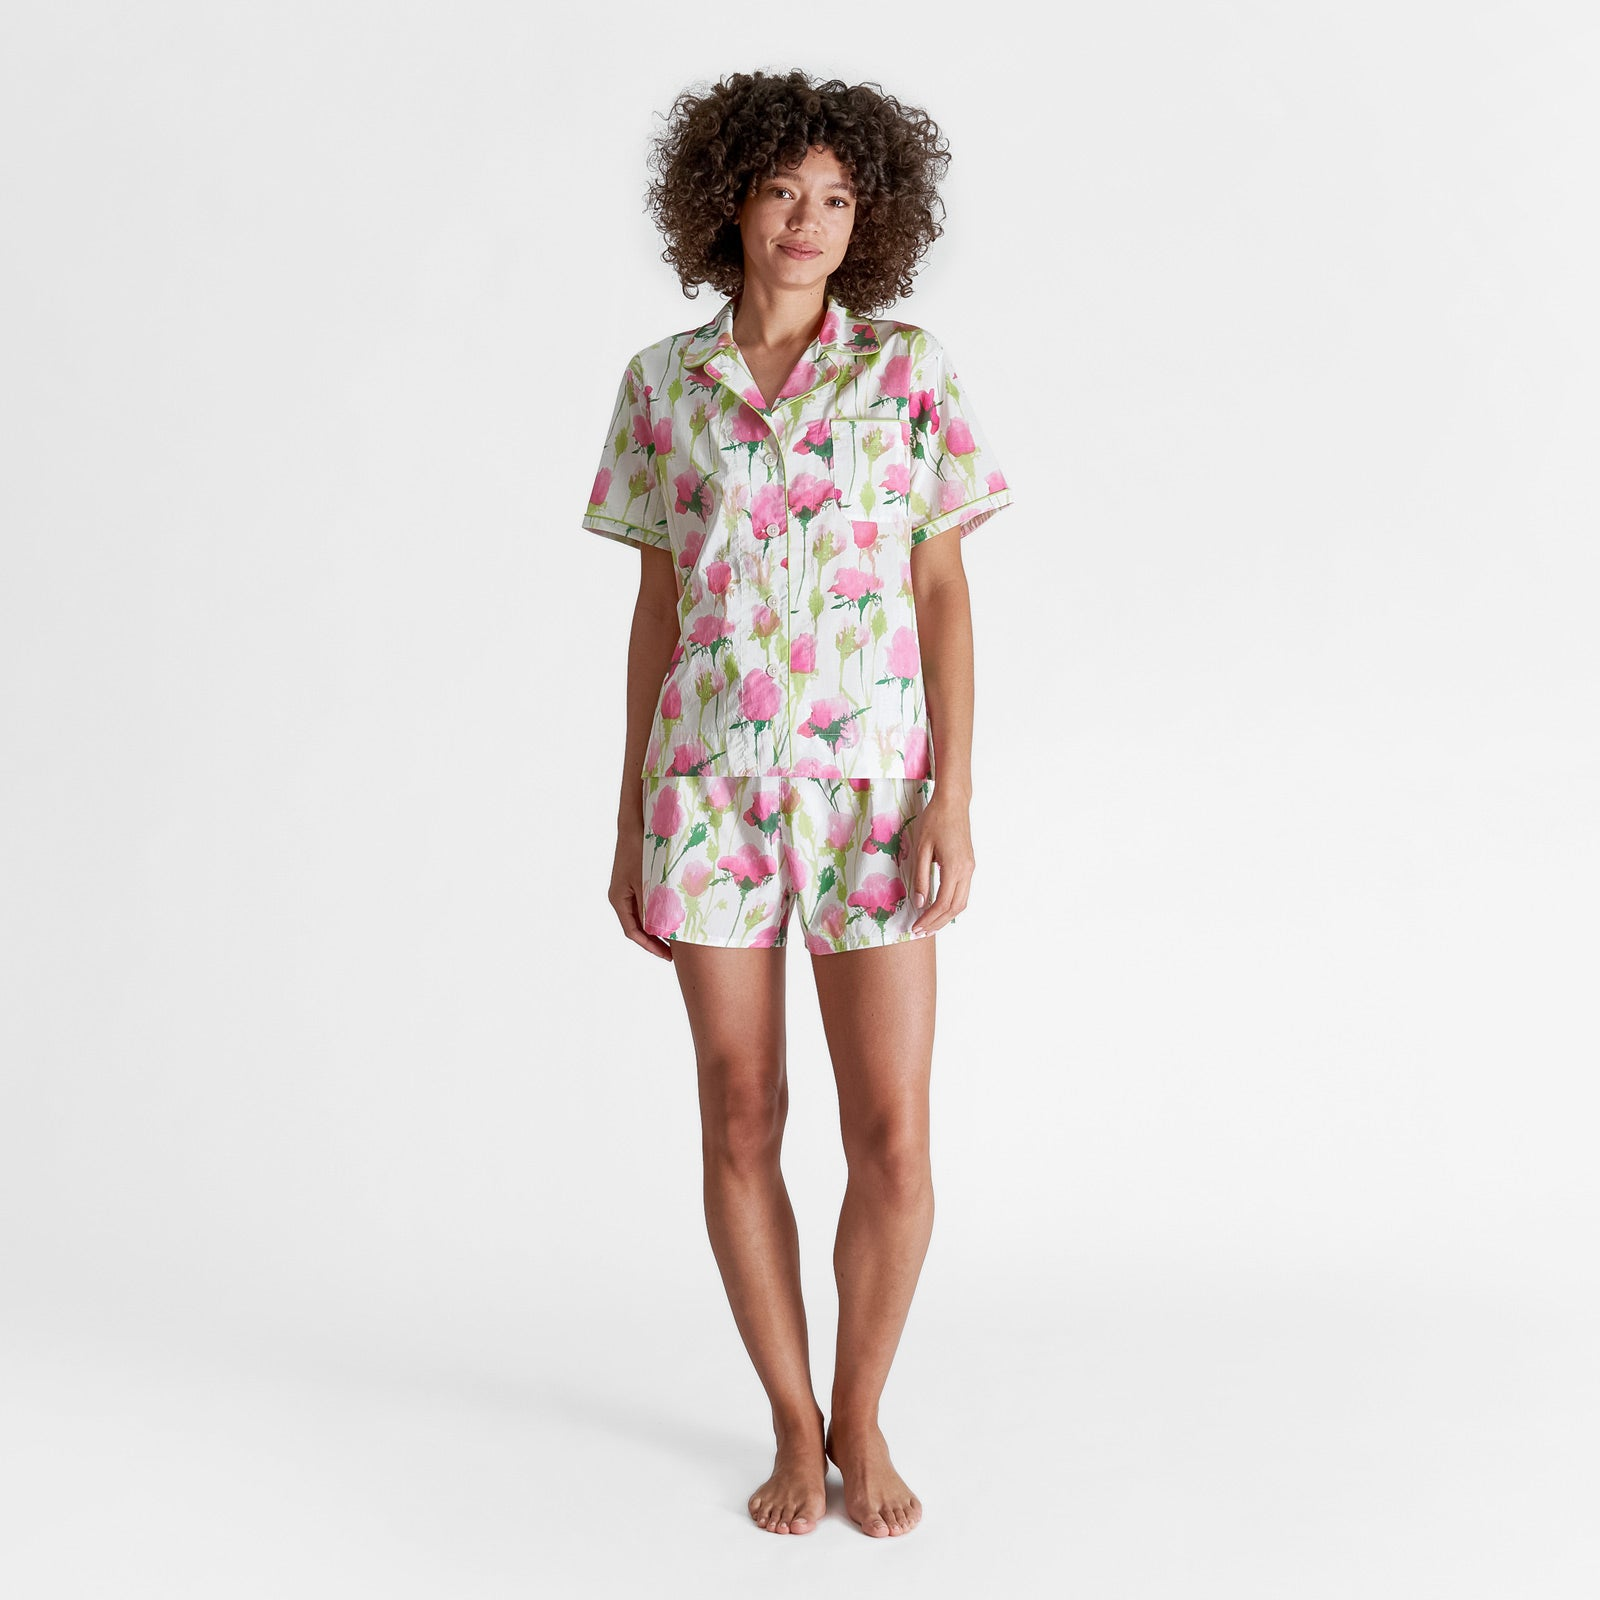 Sleepy Jones x Frances Valentine Corita Pajama Short Set - Frances Valentine